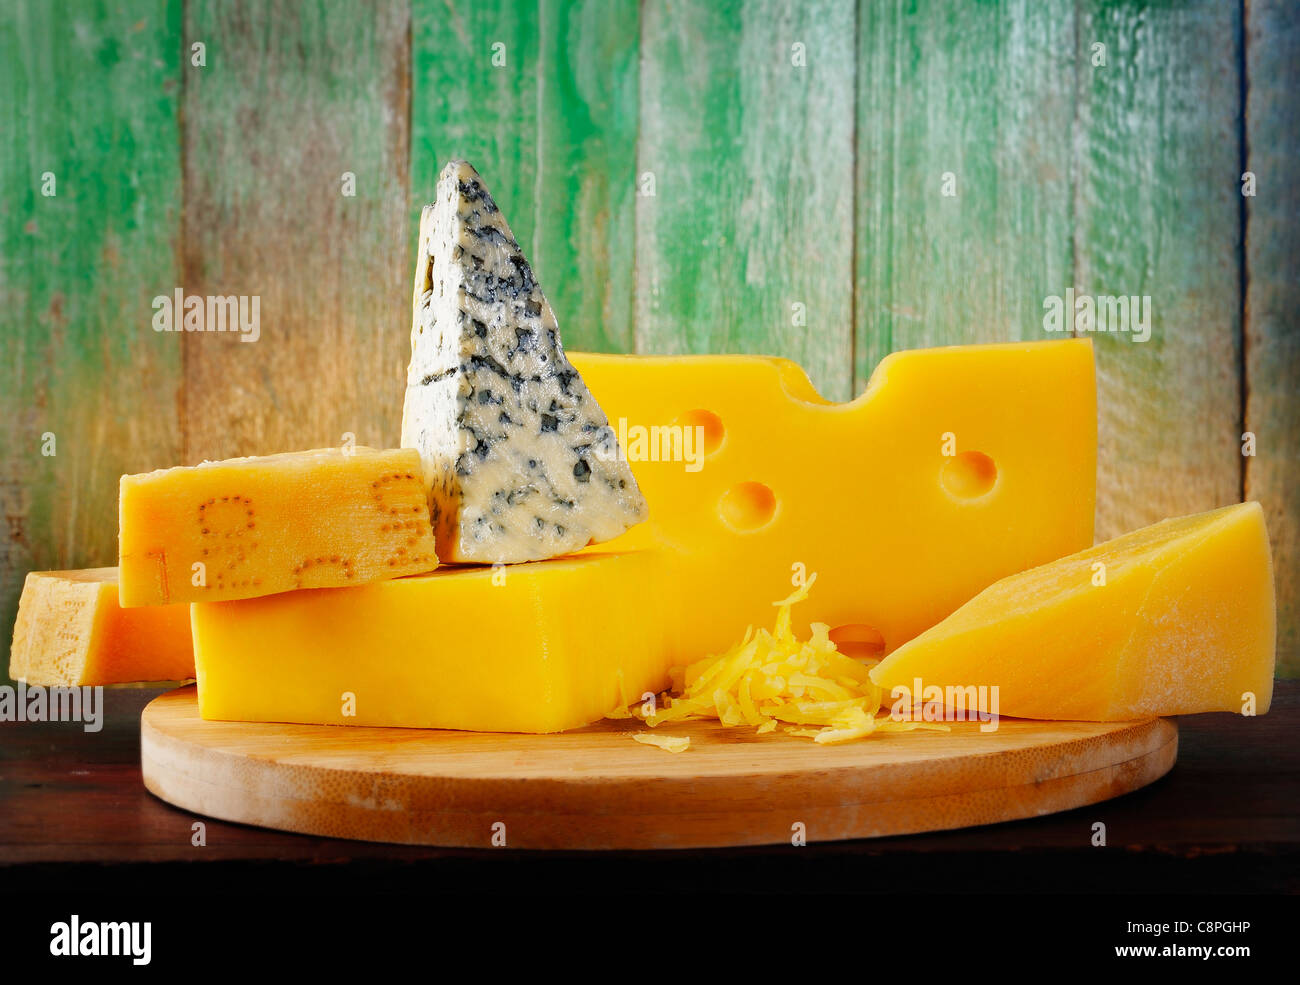 cheese on wood Stock Photo